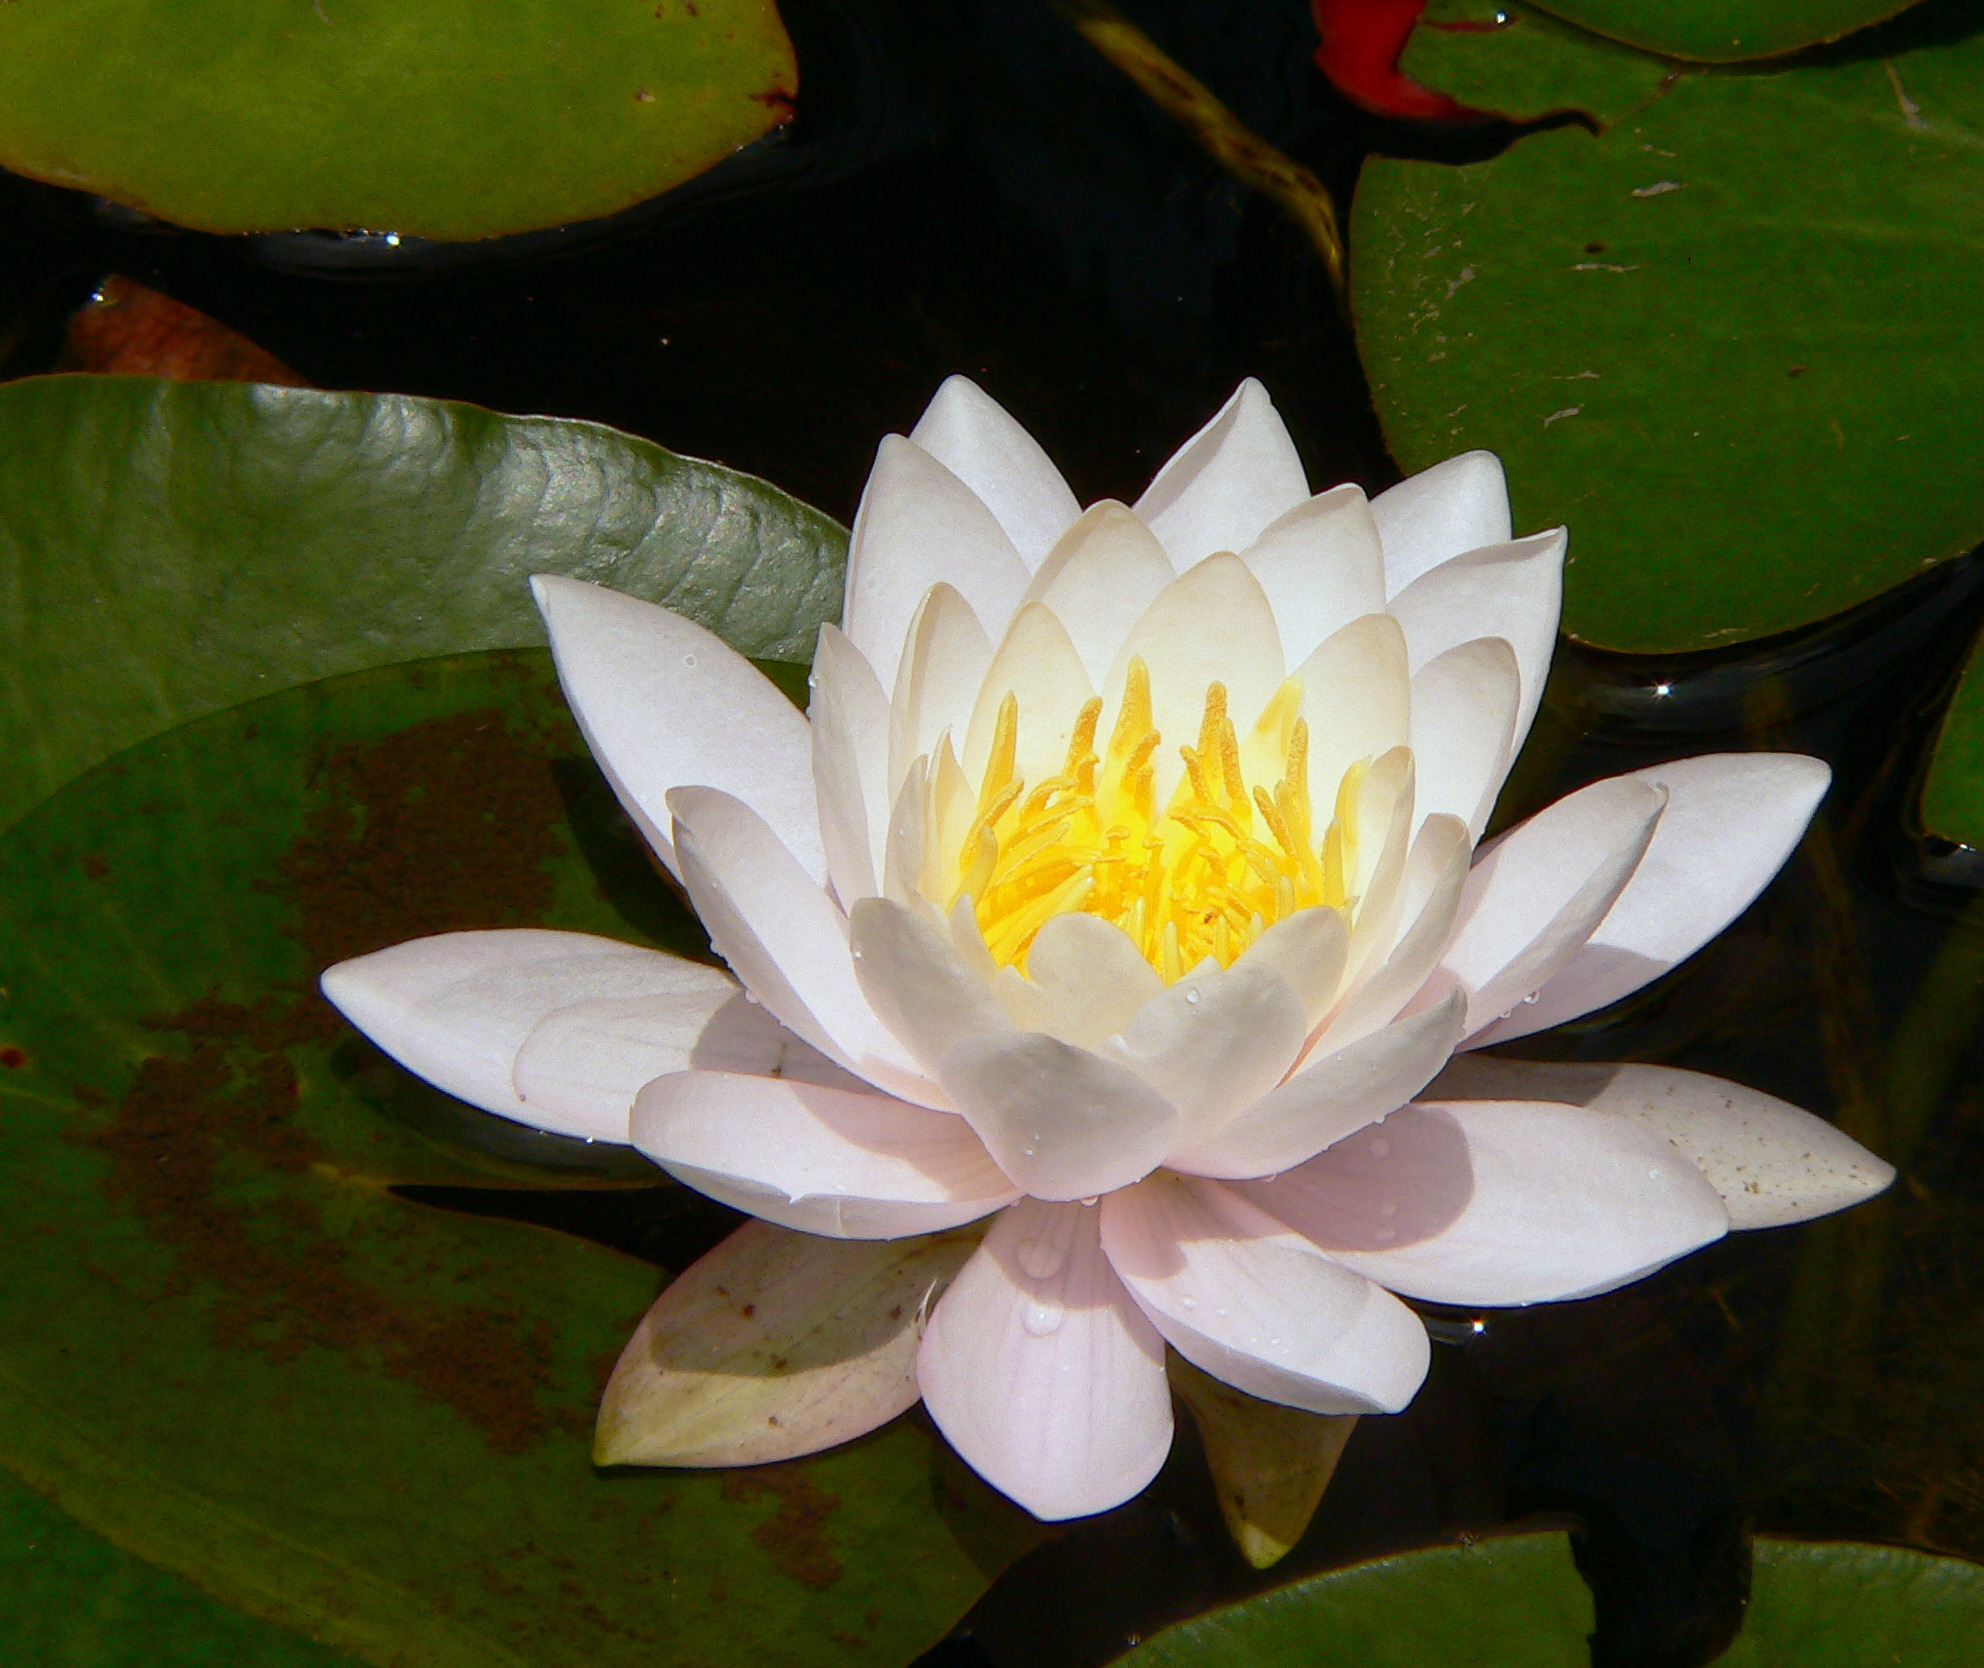 still watersnotes from a virginia shire white lotus day, Natural flower